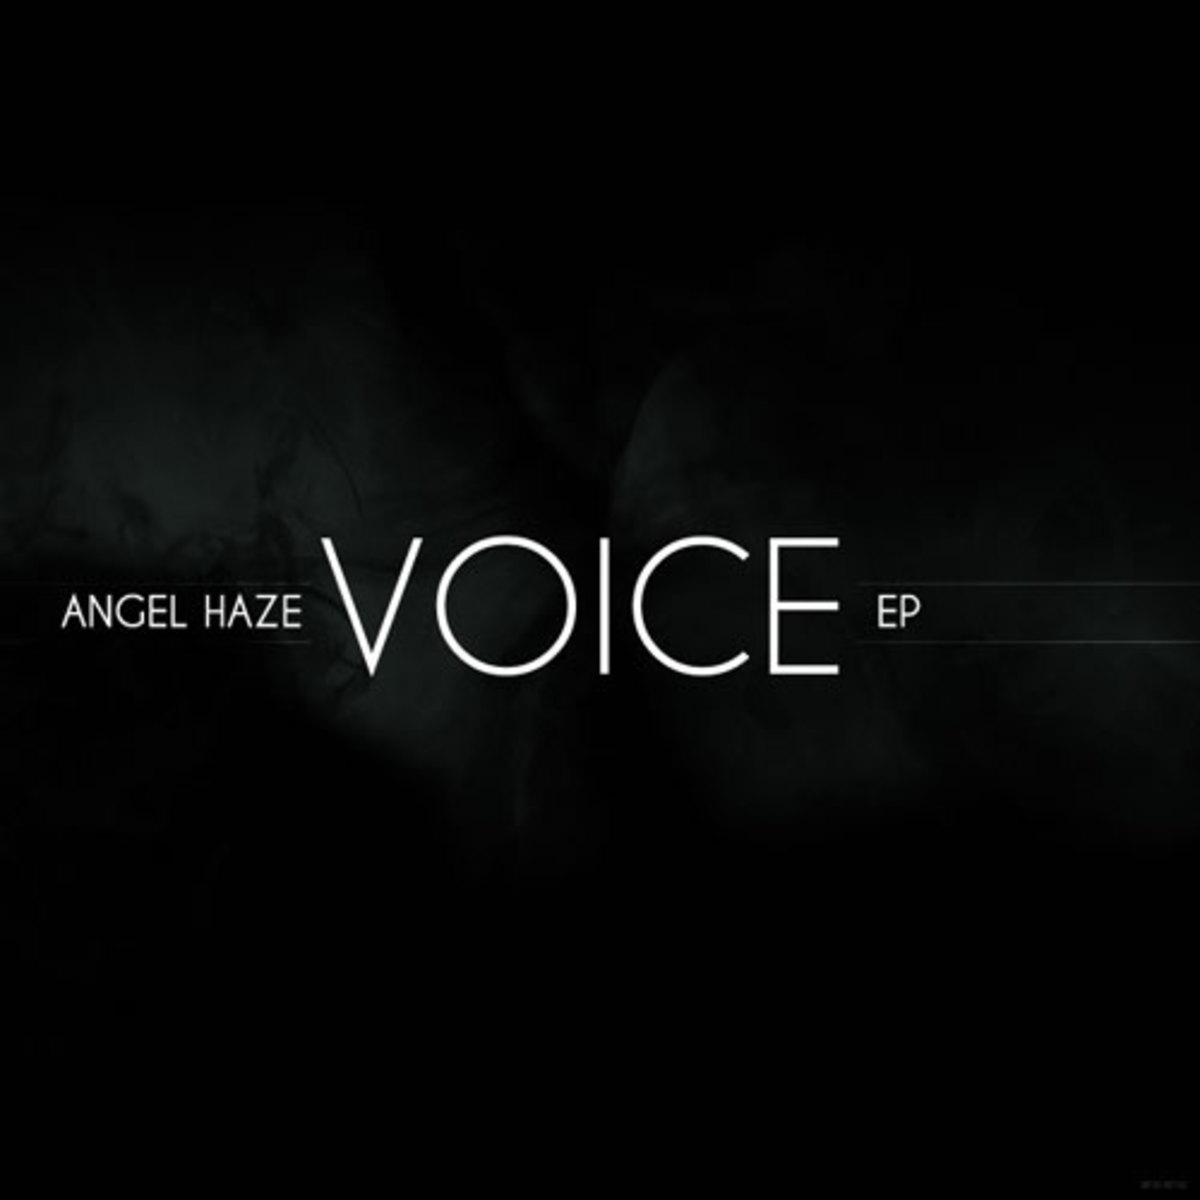 angelhaze-voiceep.jpg